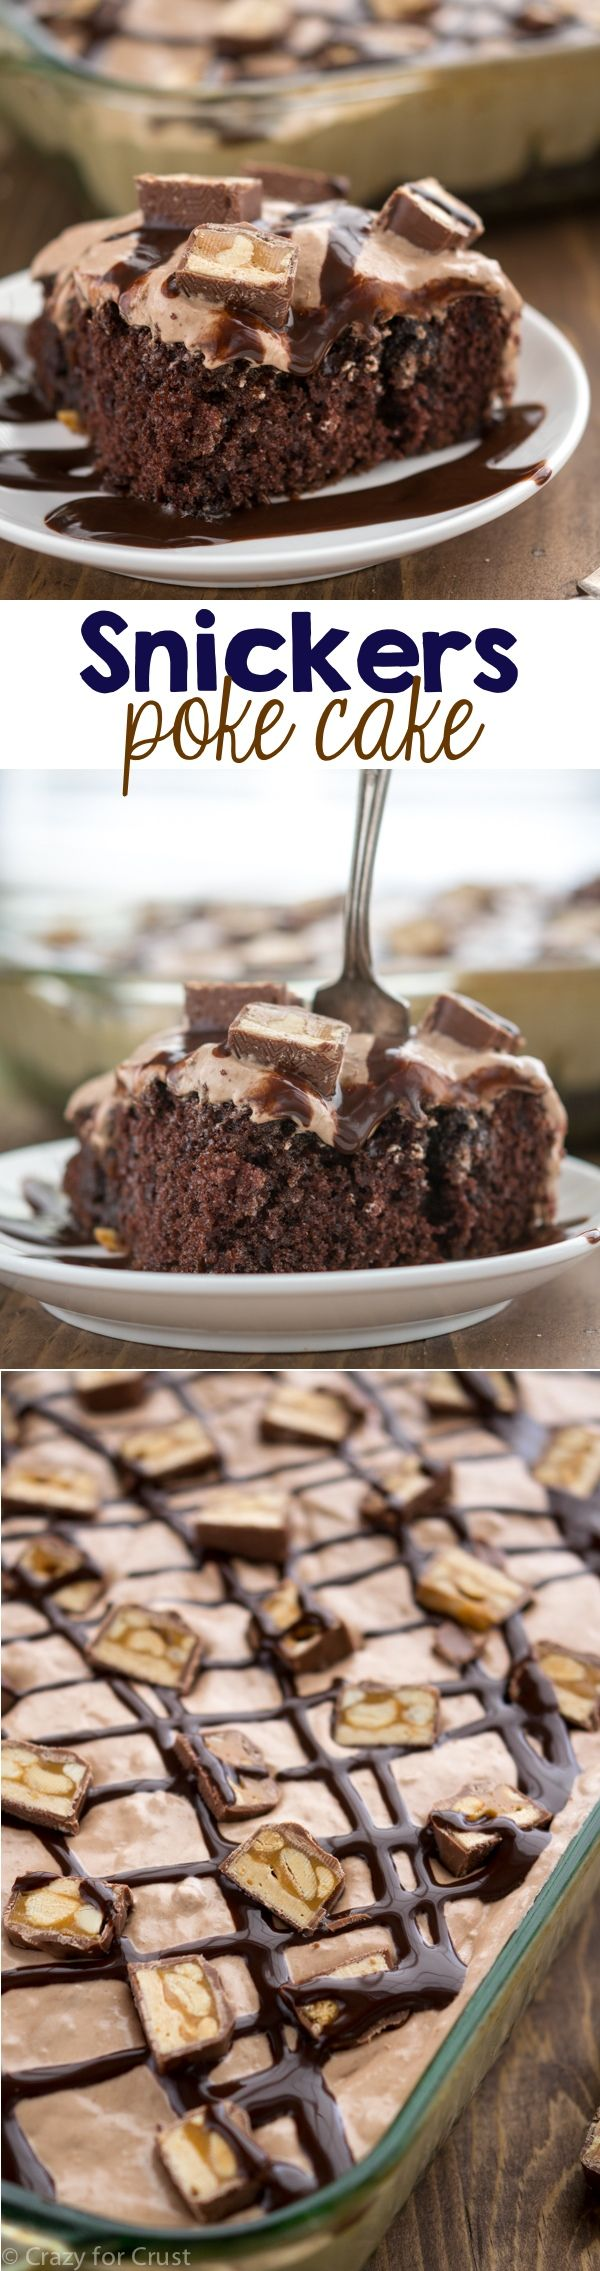 Snickers Poke Cake filled with caramel and peanuts and topped with a nougat frosting!